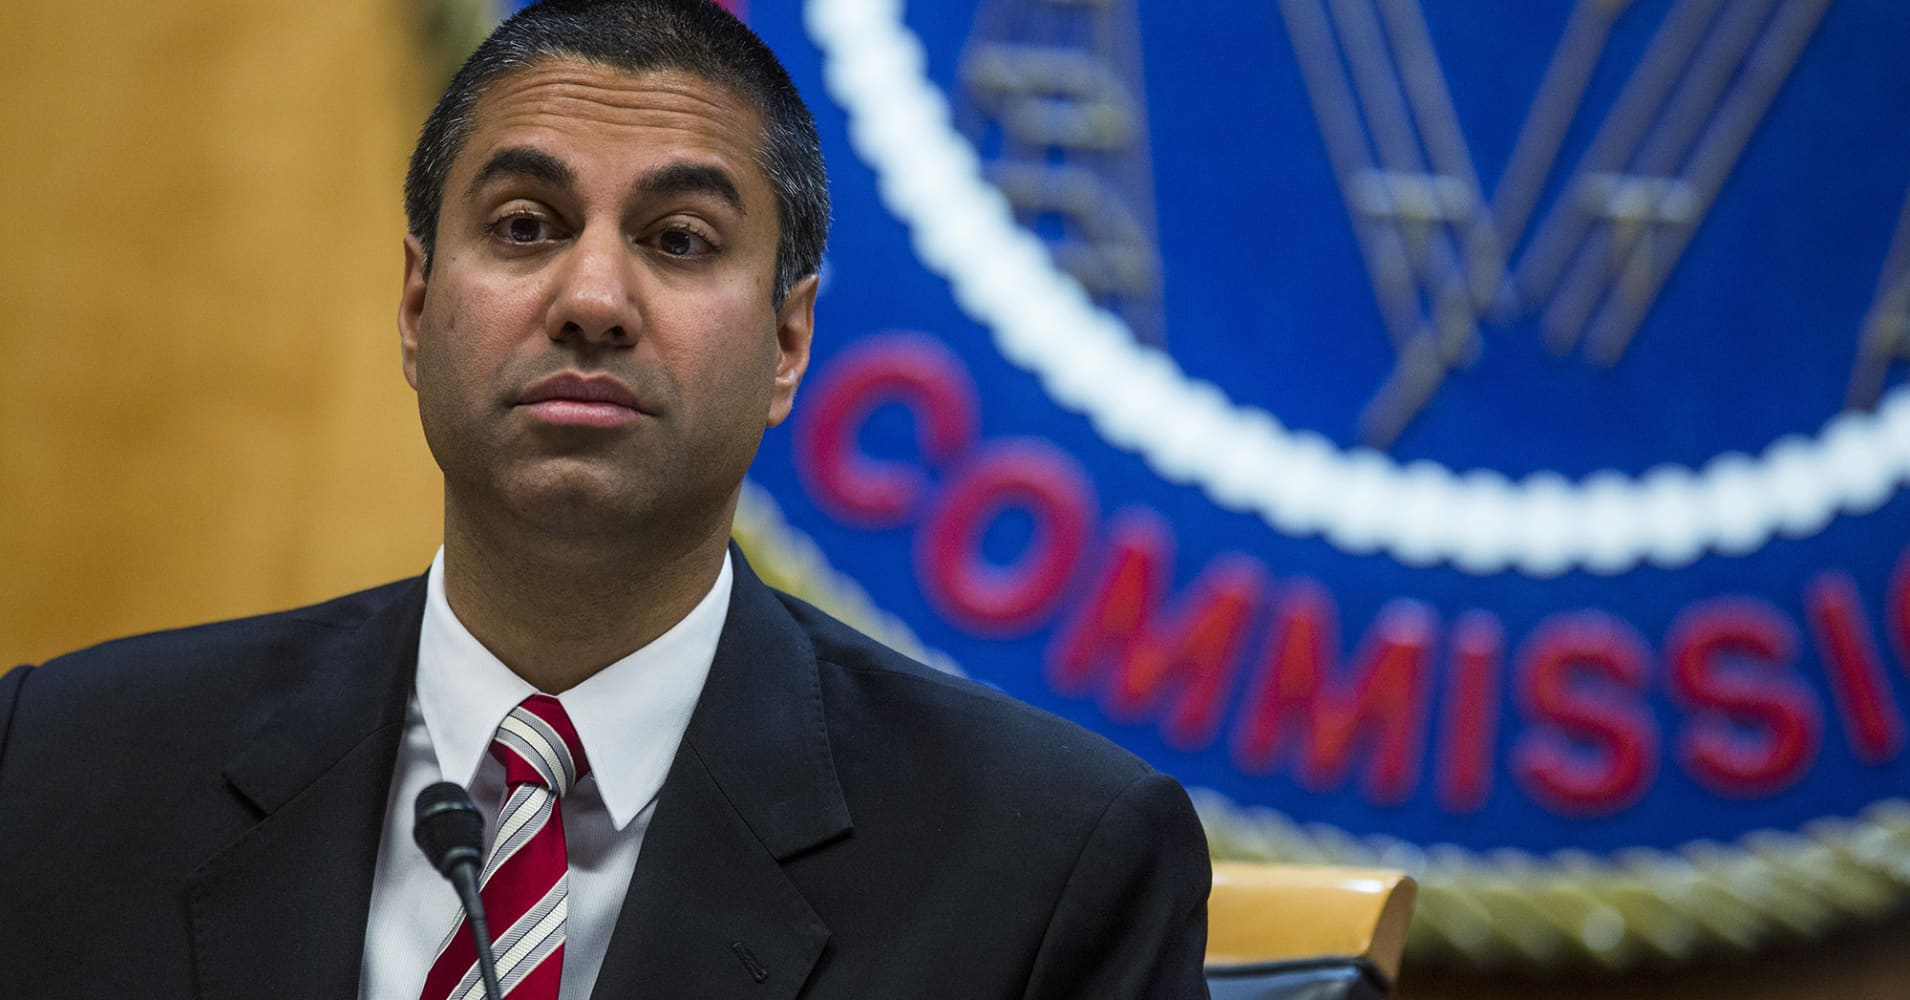 FCC Chairman Ajit Pai blasted everyone from Cher to Twitter for opposing his efforts to repeal net neutrality rules